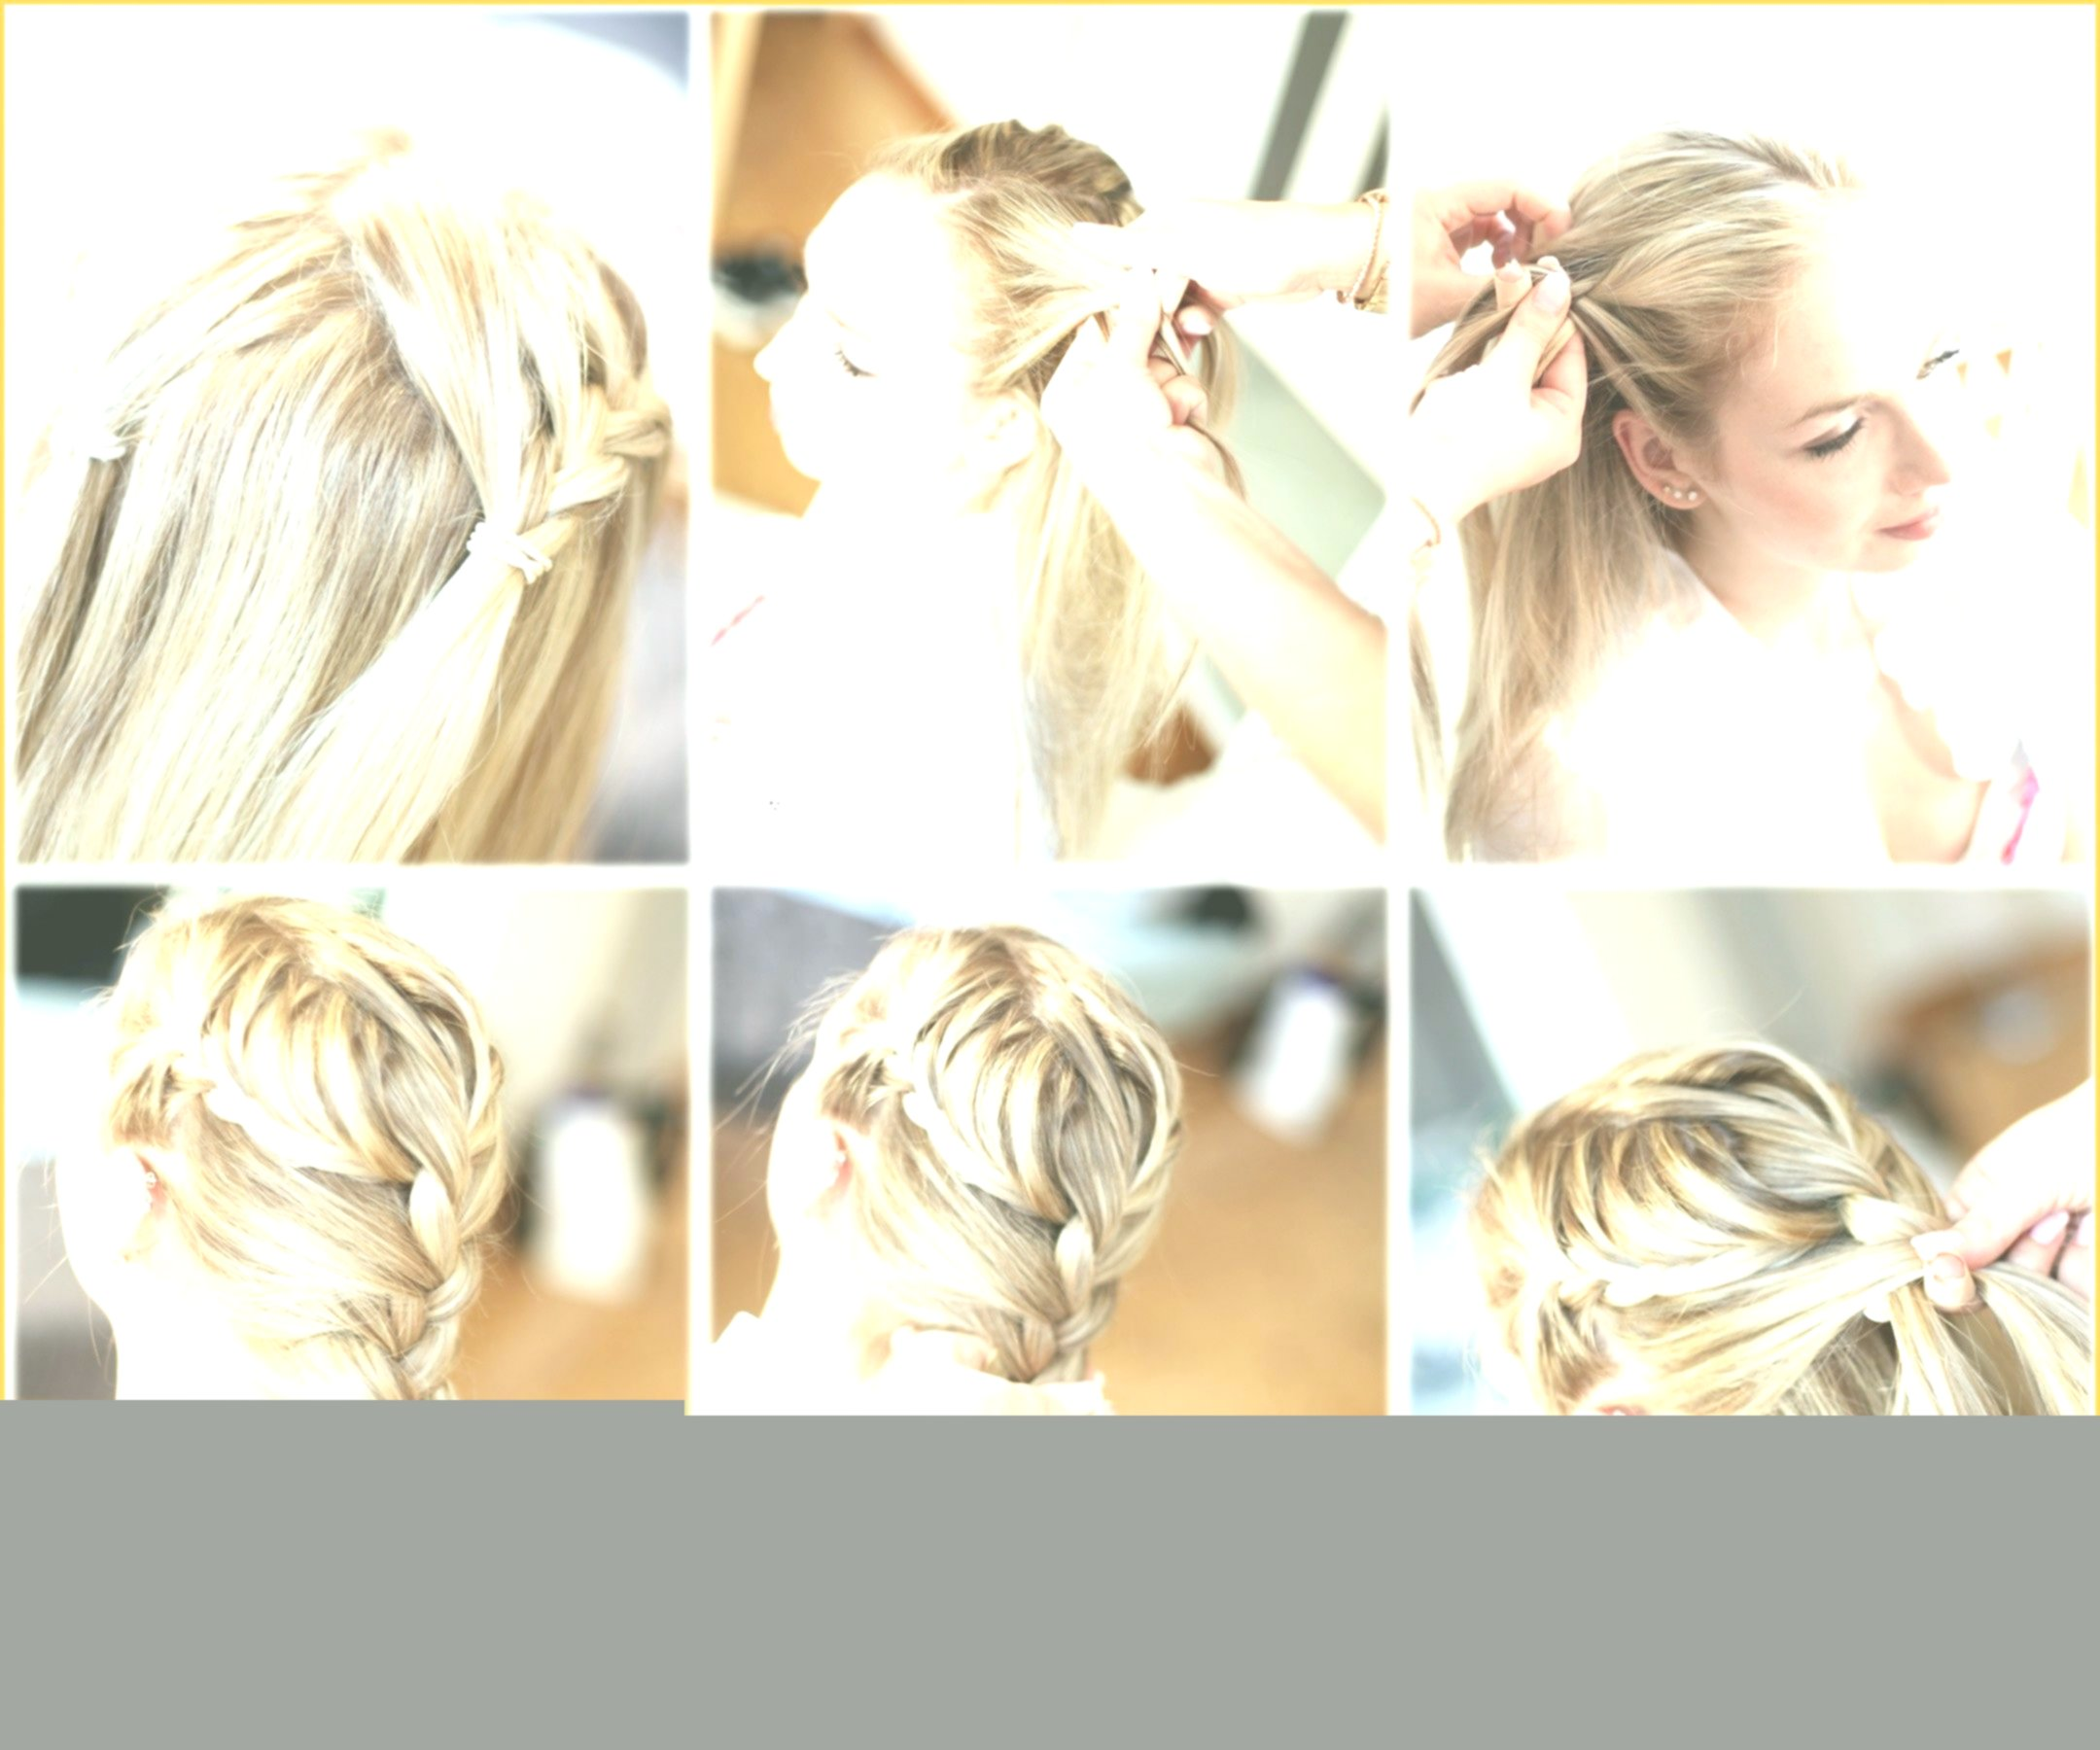 hairstyles communion design-Fascinating hairstyles communion image